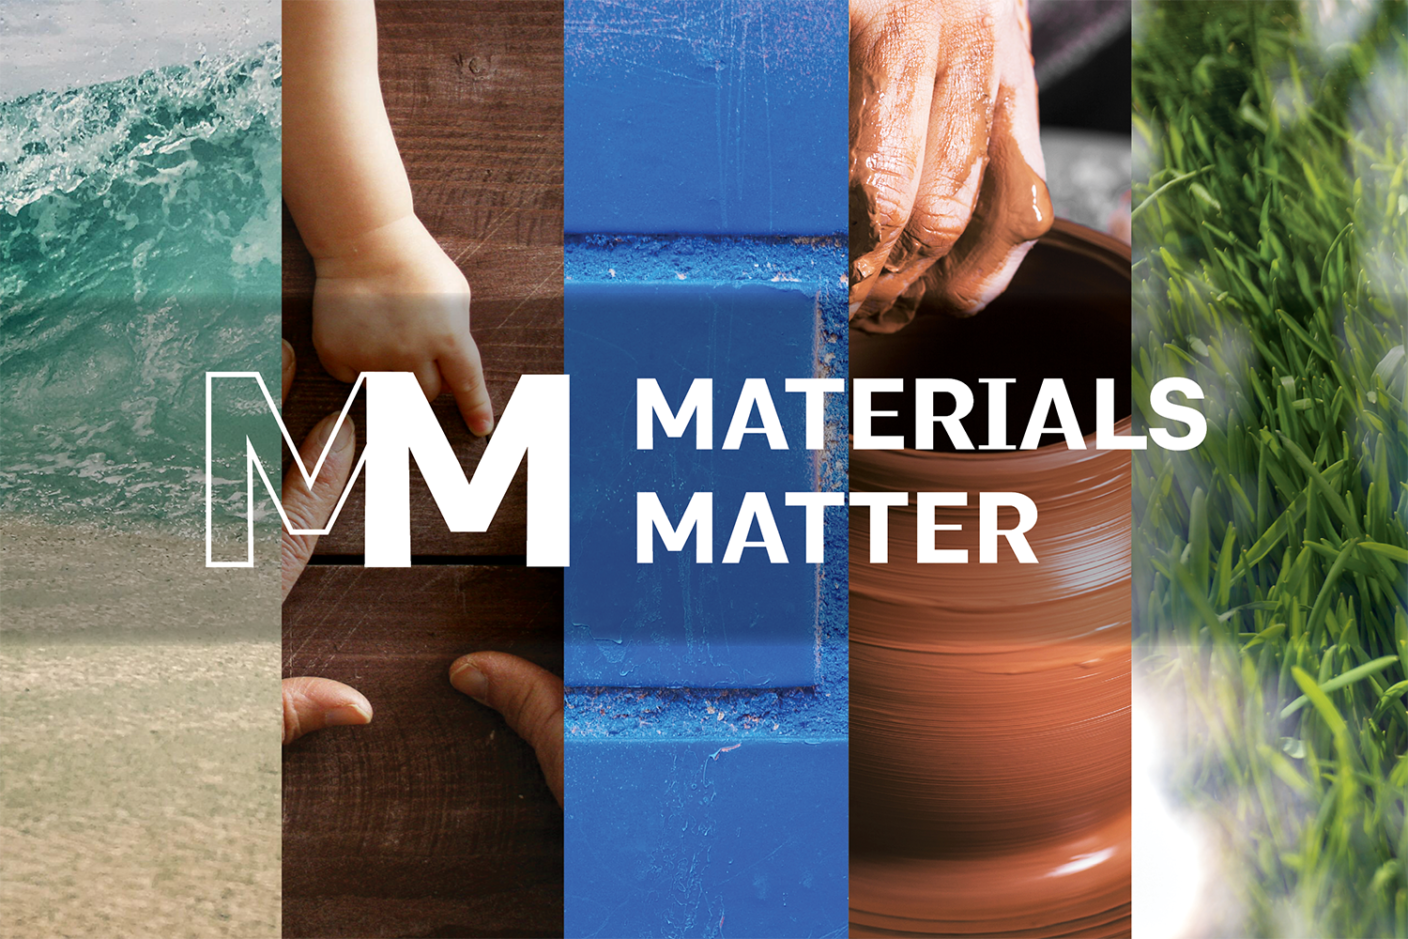 Materials Matter is a five-session series delivering comprehensive, high-level knowledge and strategies for assessing and selecting healthy, sustainable materials.